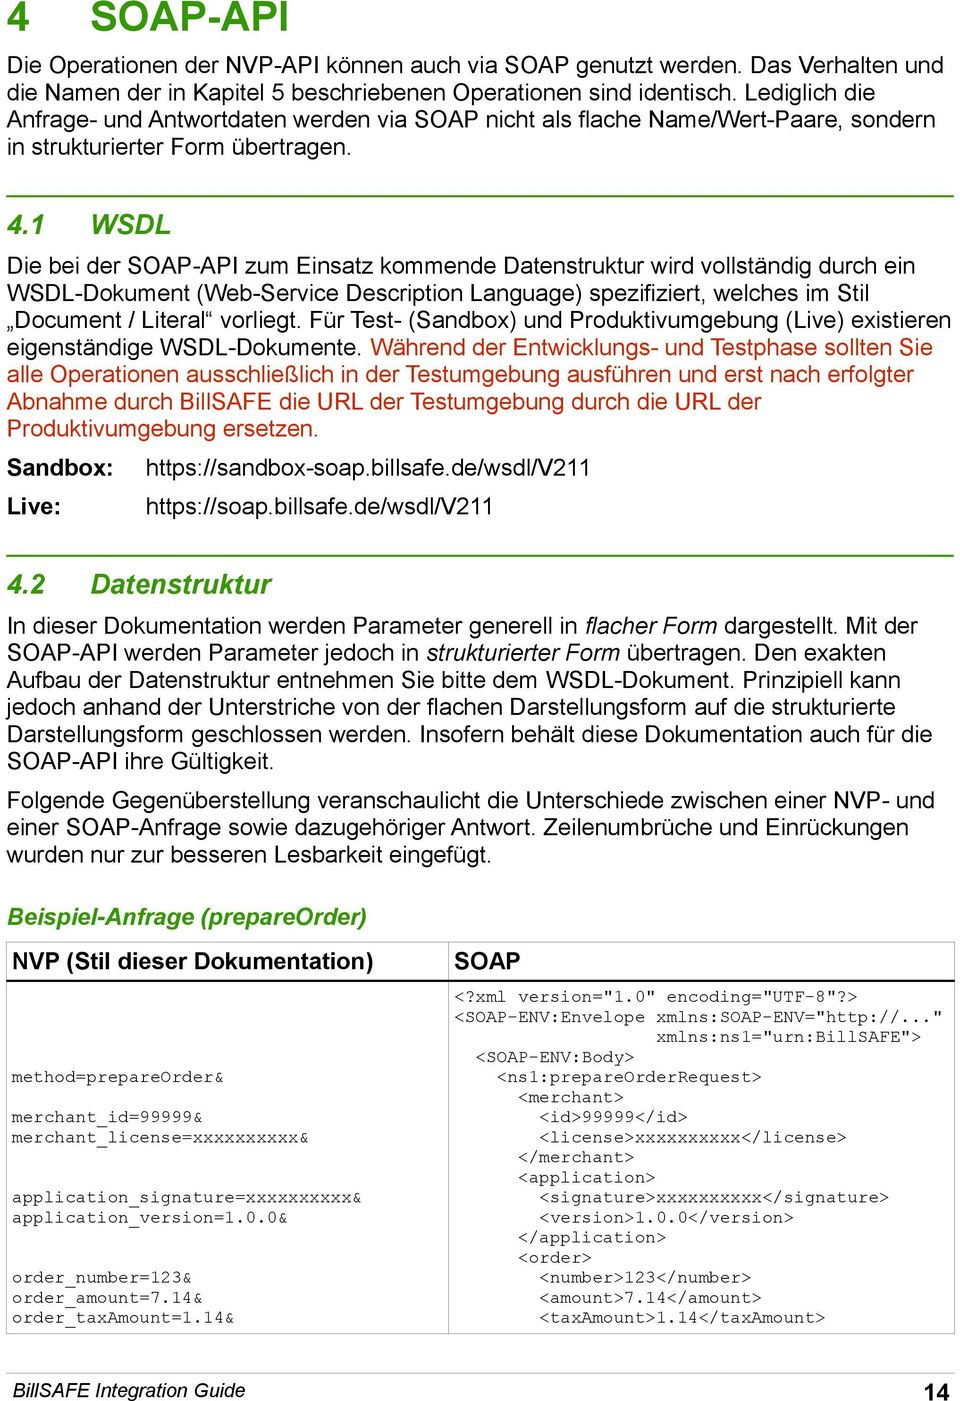 1 WSDL Die bei der SOAP-API zum Einsatz kommende Datenstruktur wird vollständig durch ein WSDL-Dokument (Web-Service Description Language) spezifiziert, welches im Stil Document / Literal vorliegt.